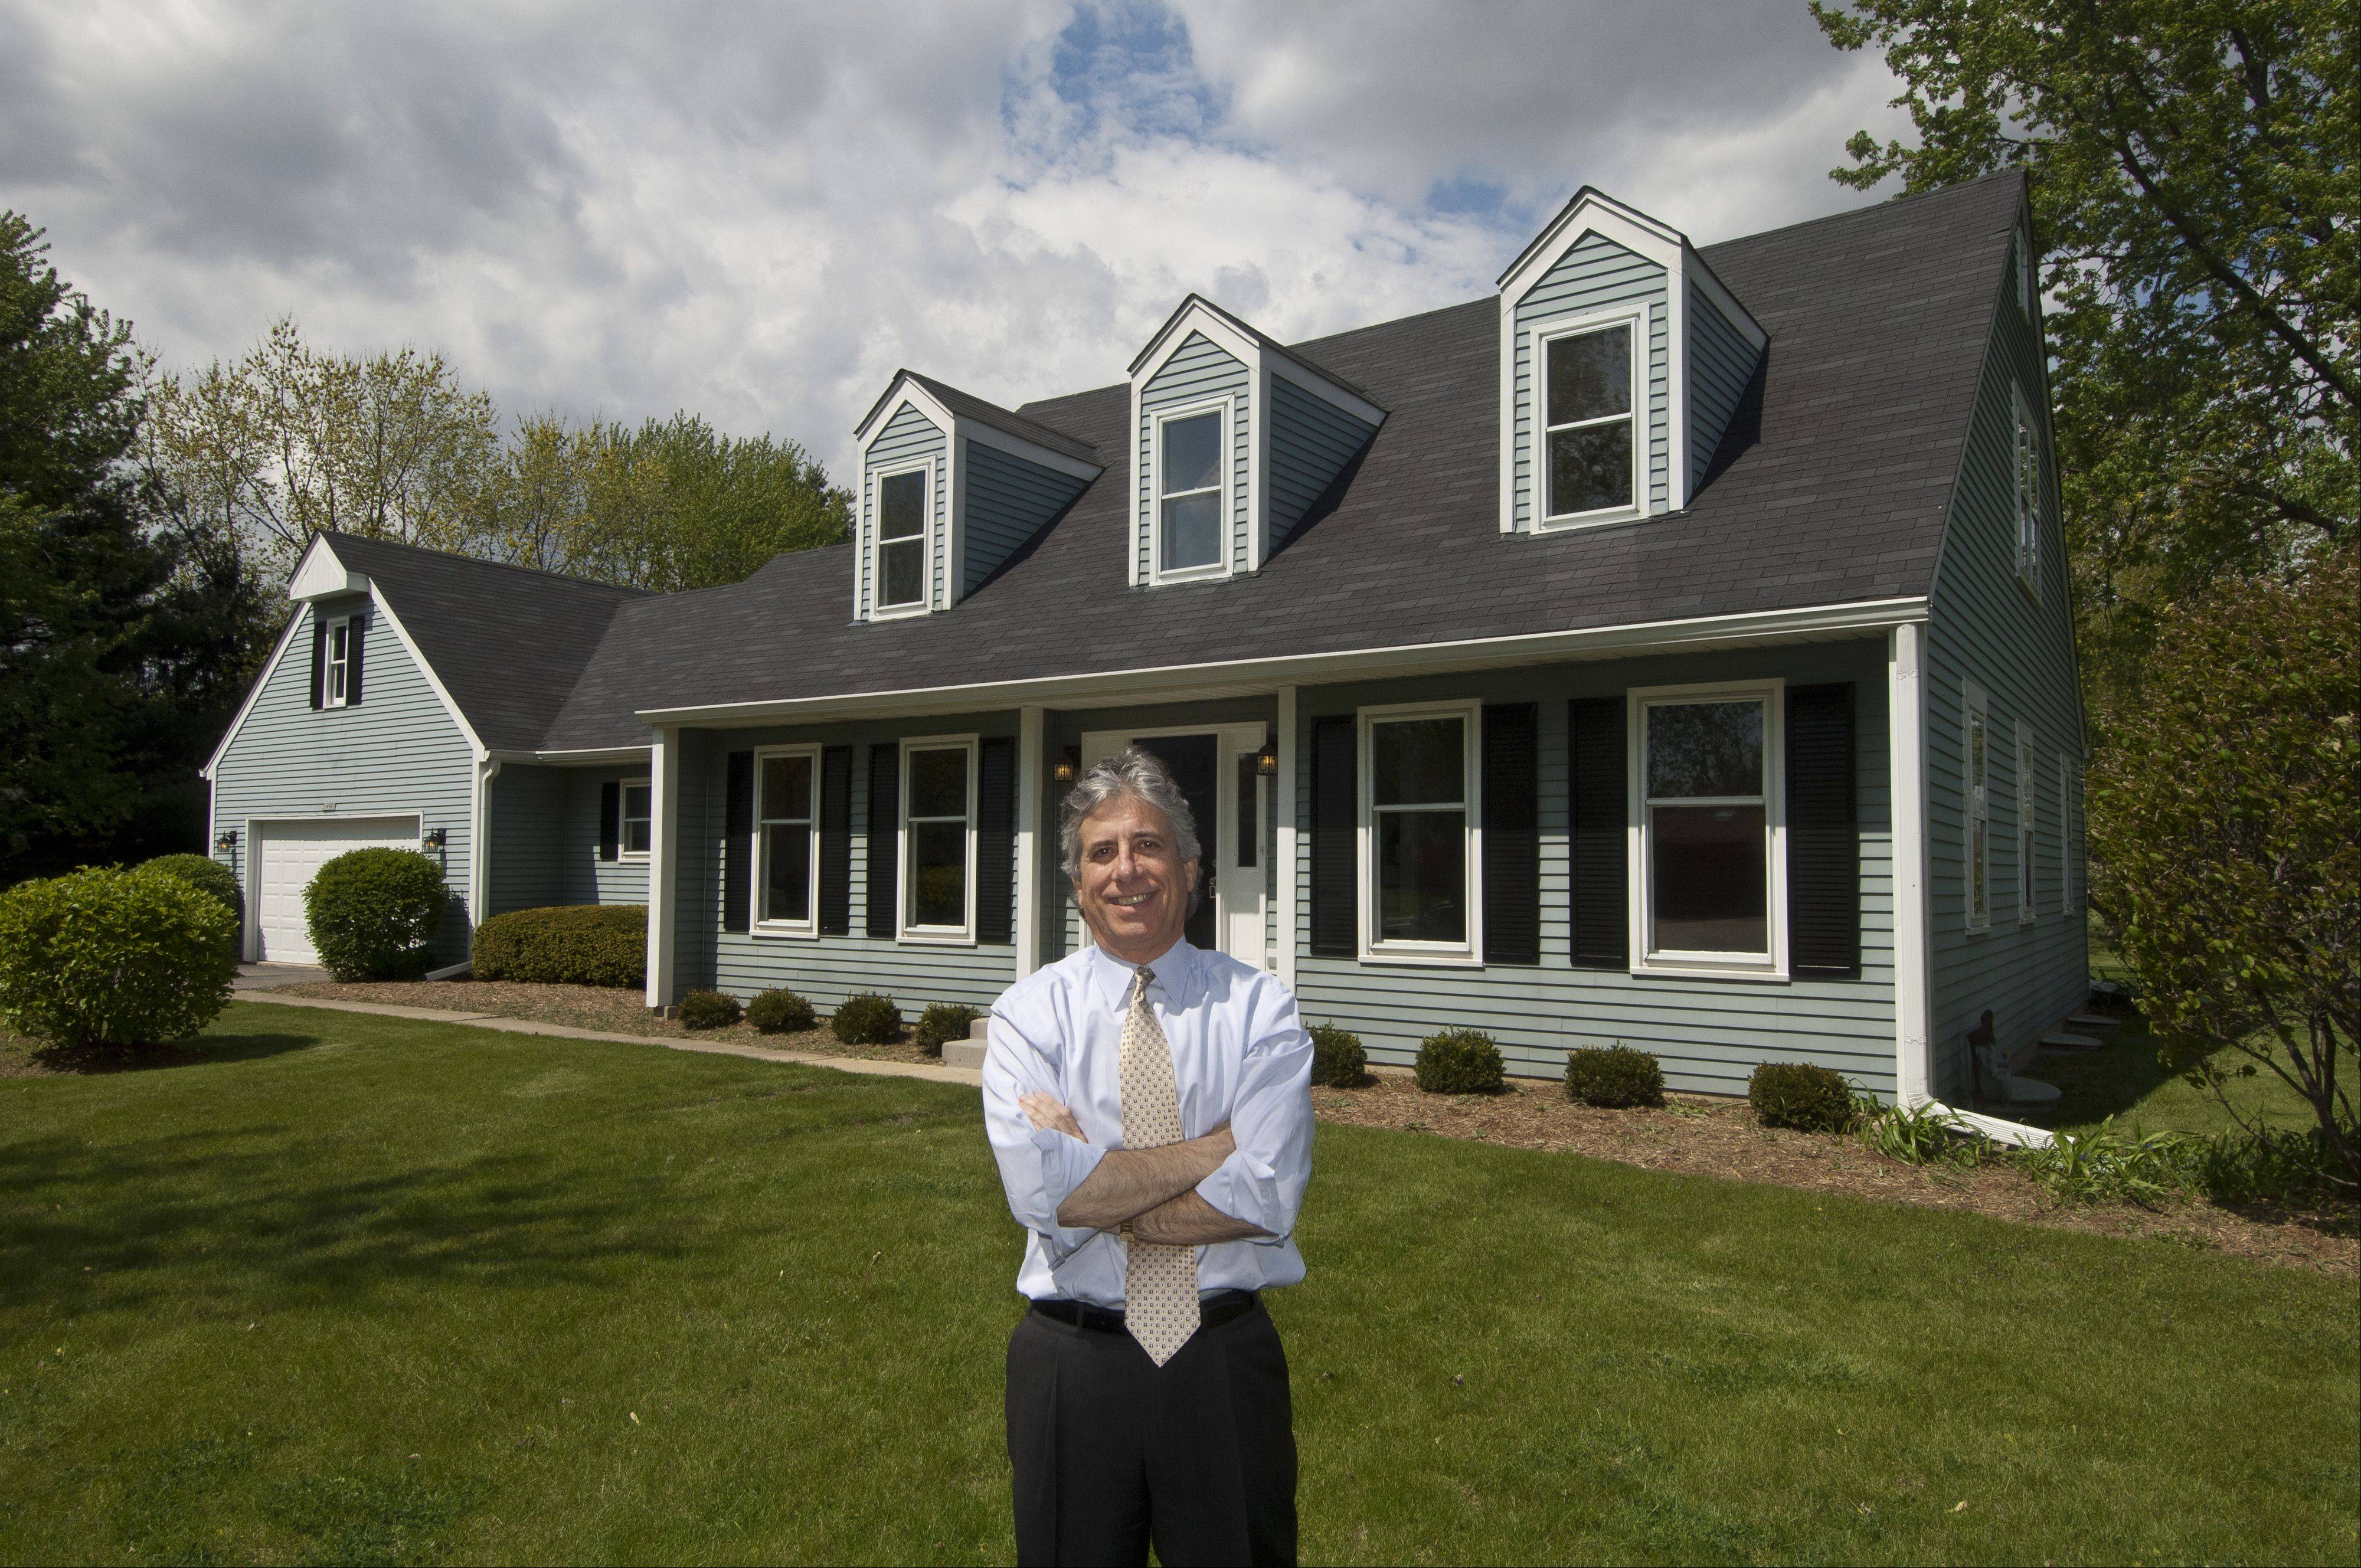 Buz Hoffman, president of Right Residential, buys, rehabs and sells houses that have gone through foreclosure.